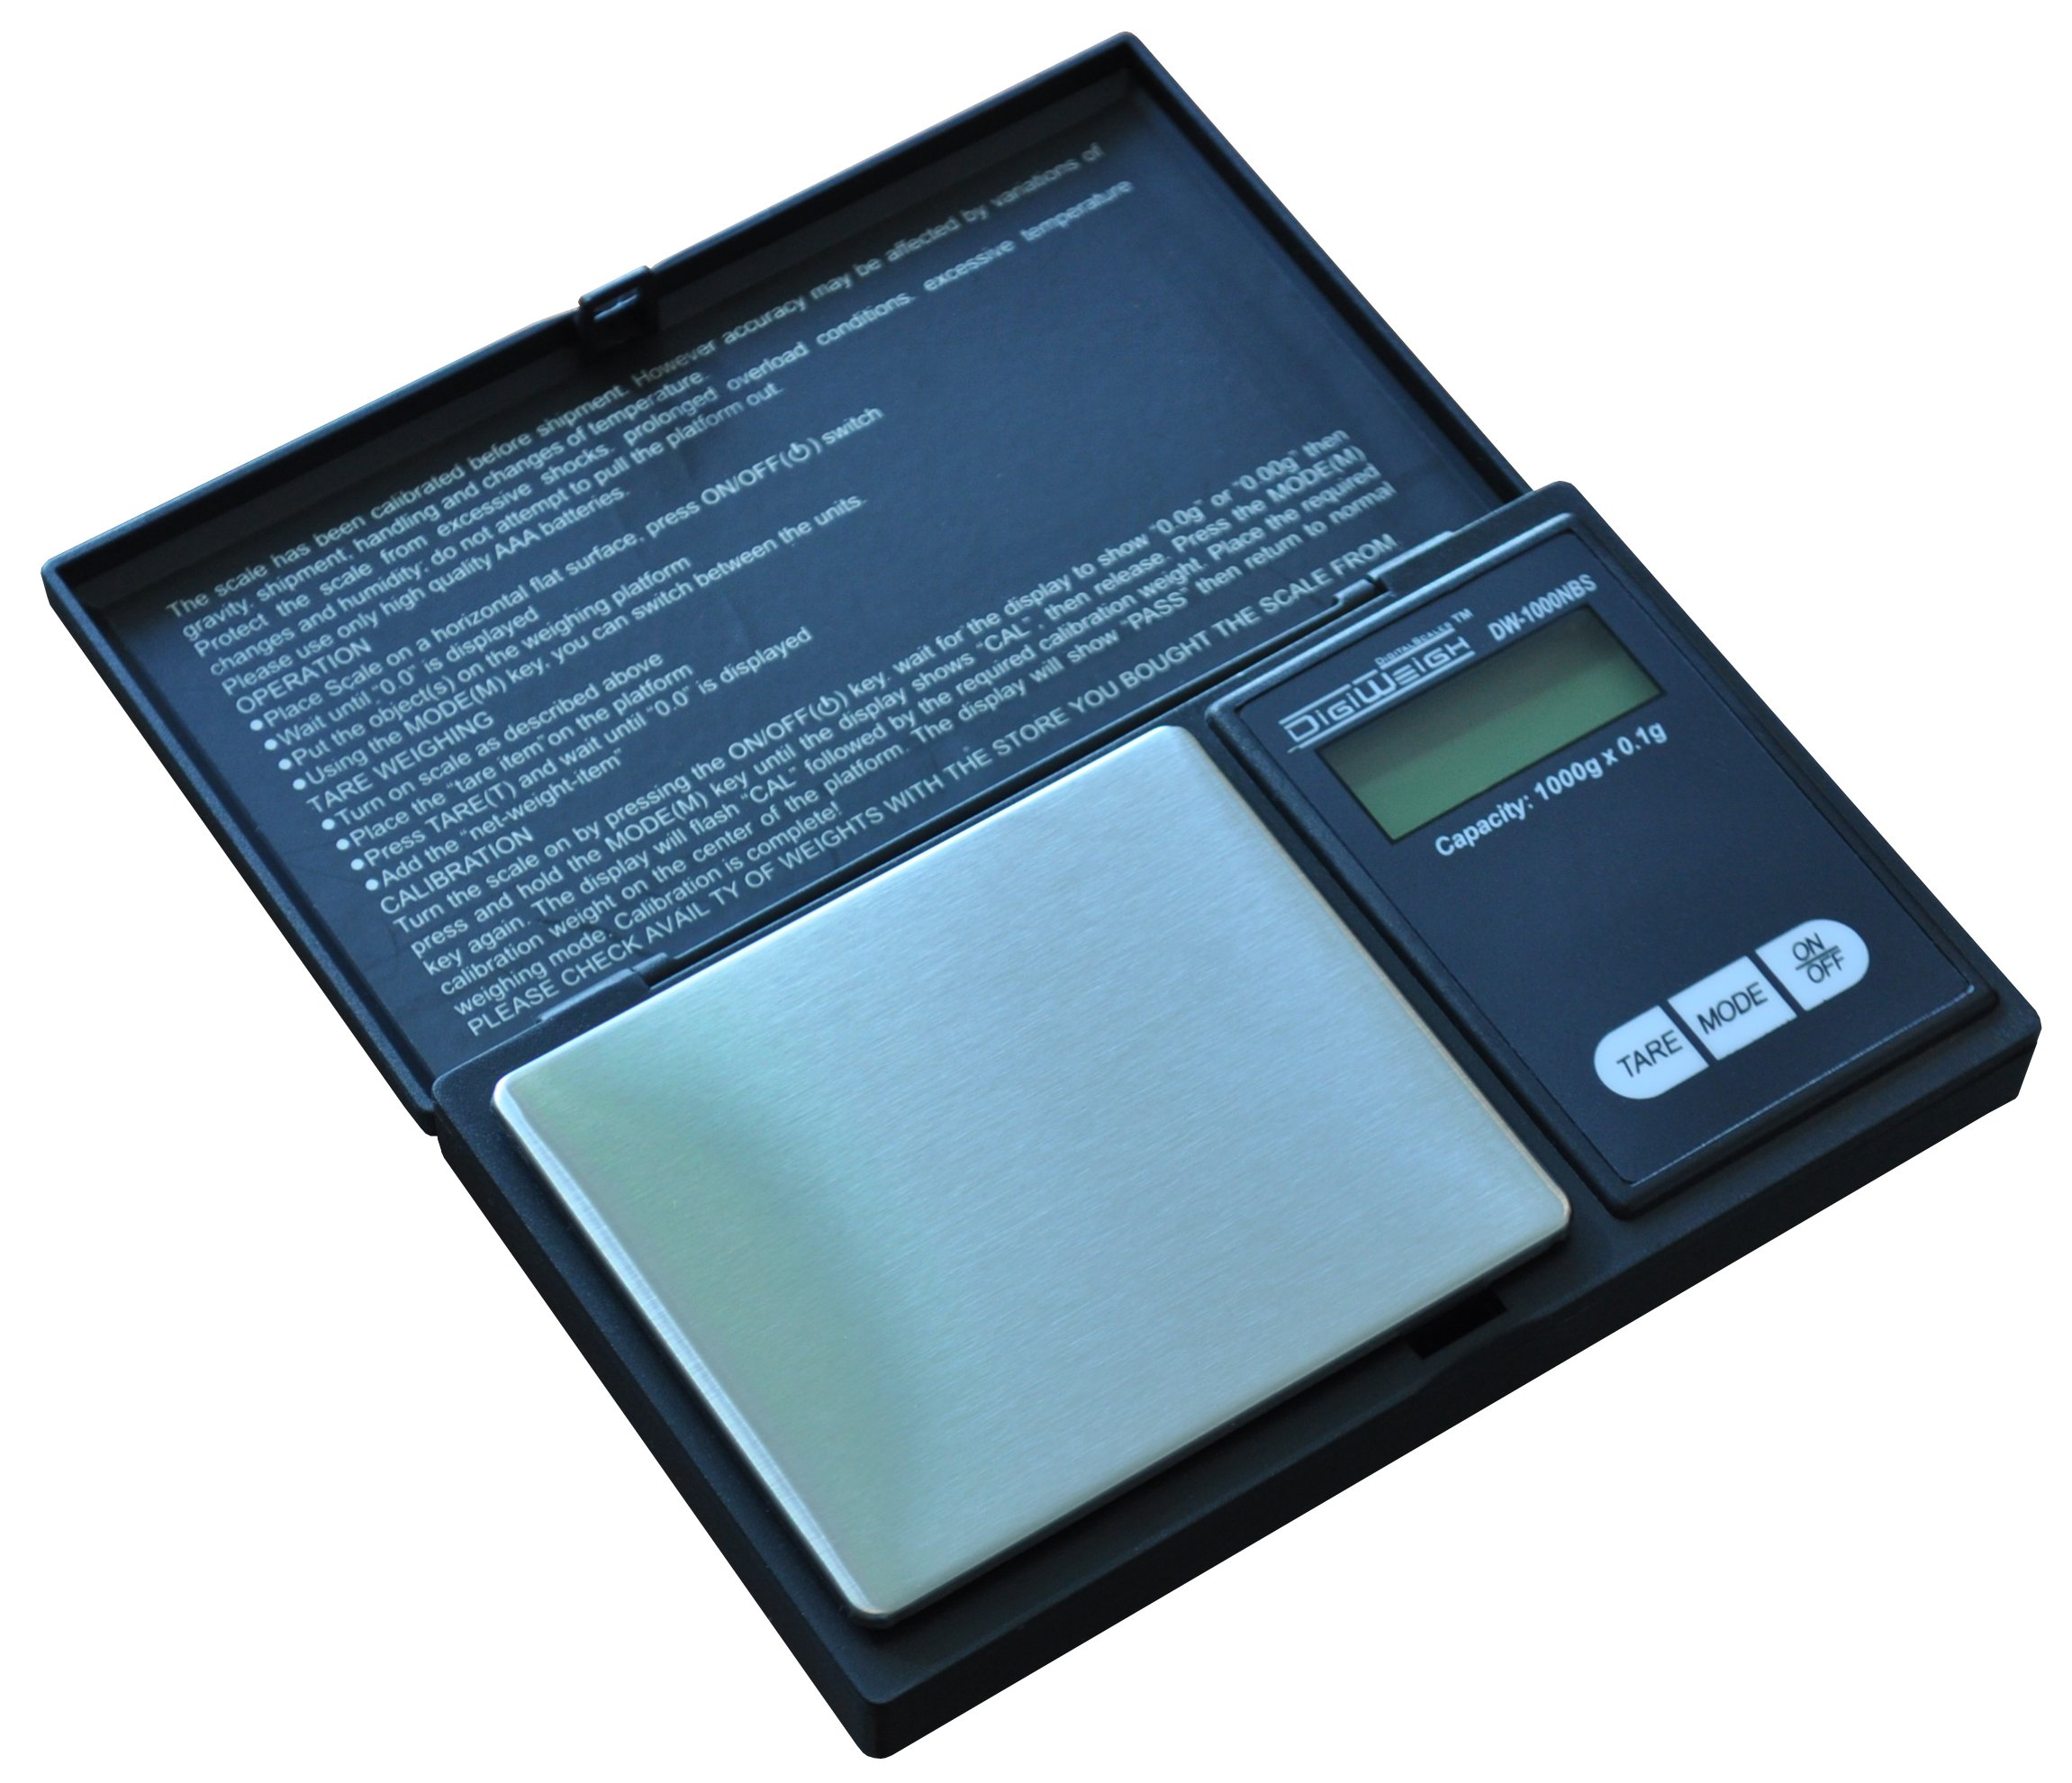 DIGIWEIGH 1000g/0.1g Pocket Scale (DW-1000NB)